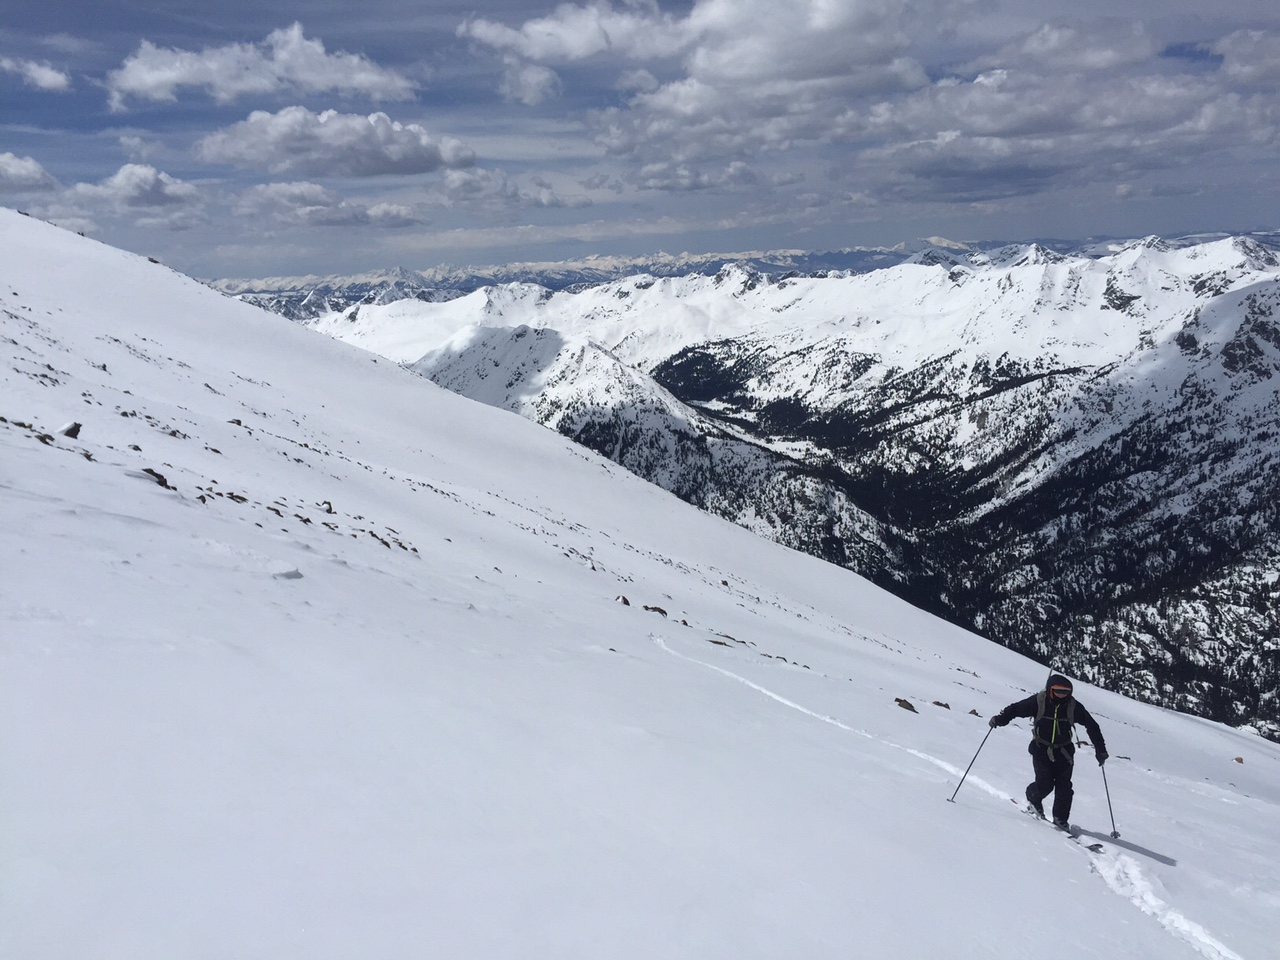 Roger putting in work as we headed to the top. Elk Range in the distance.